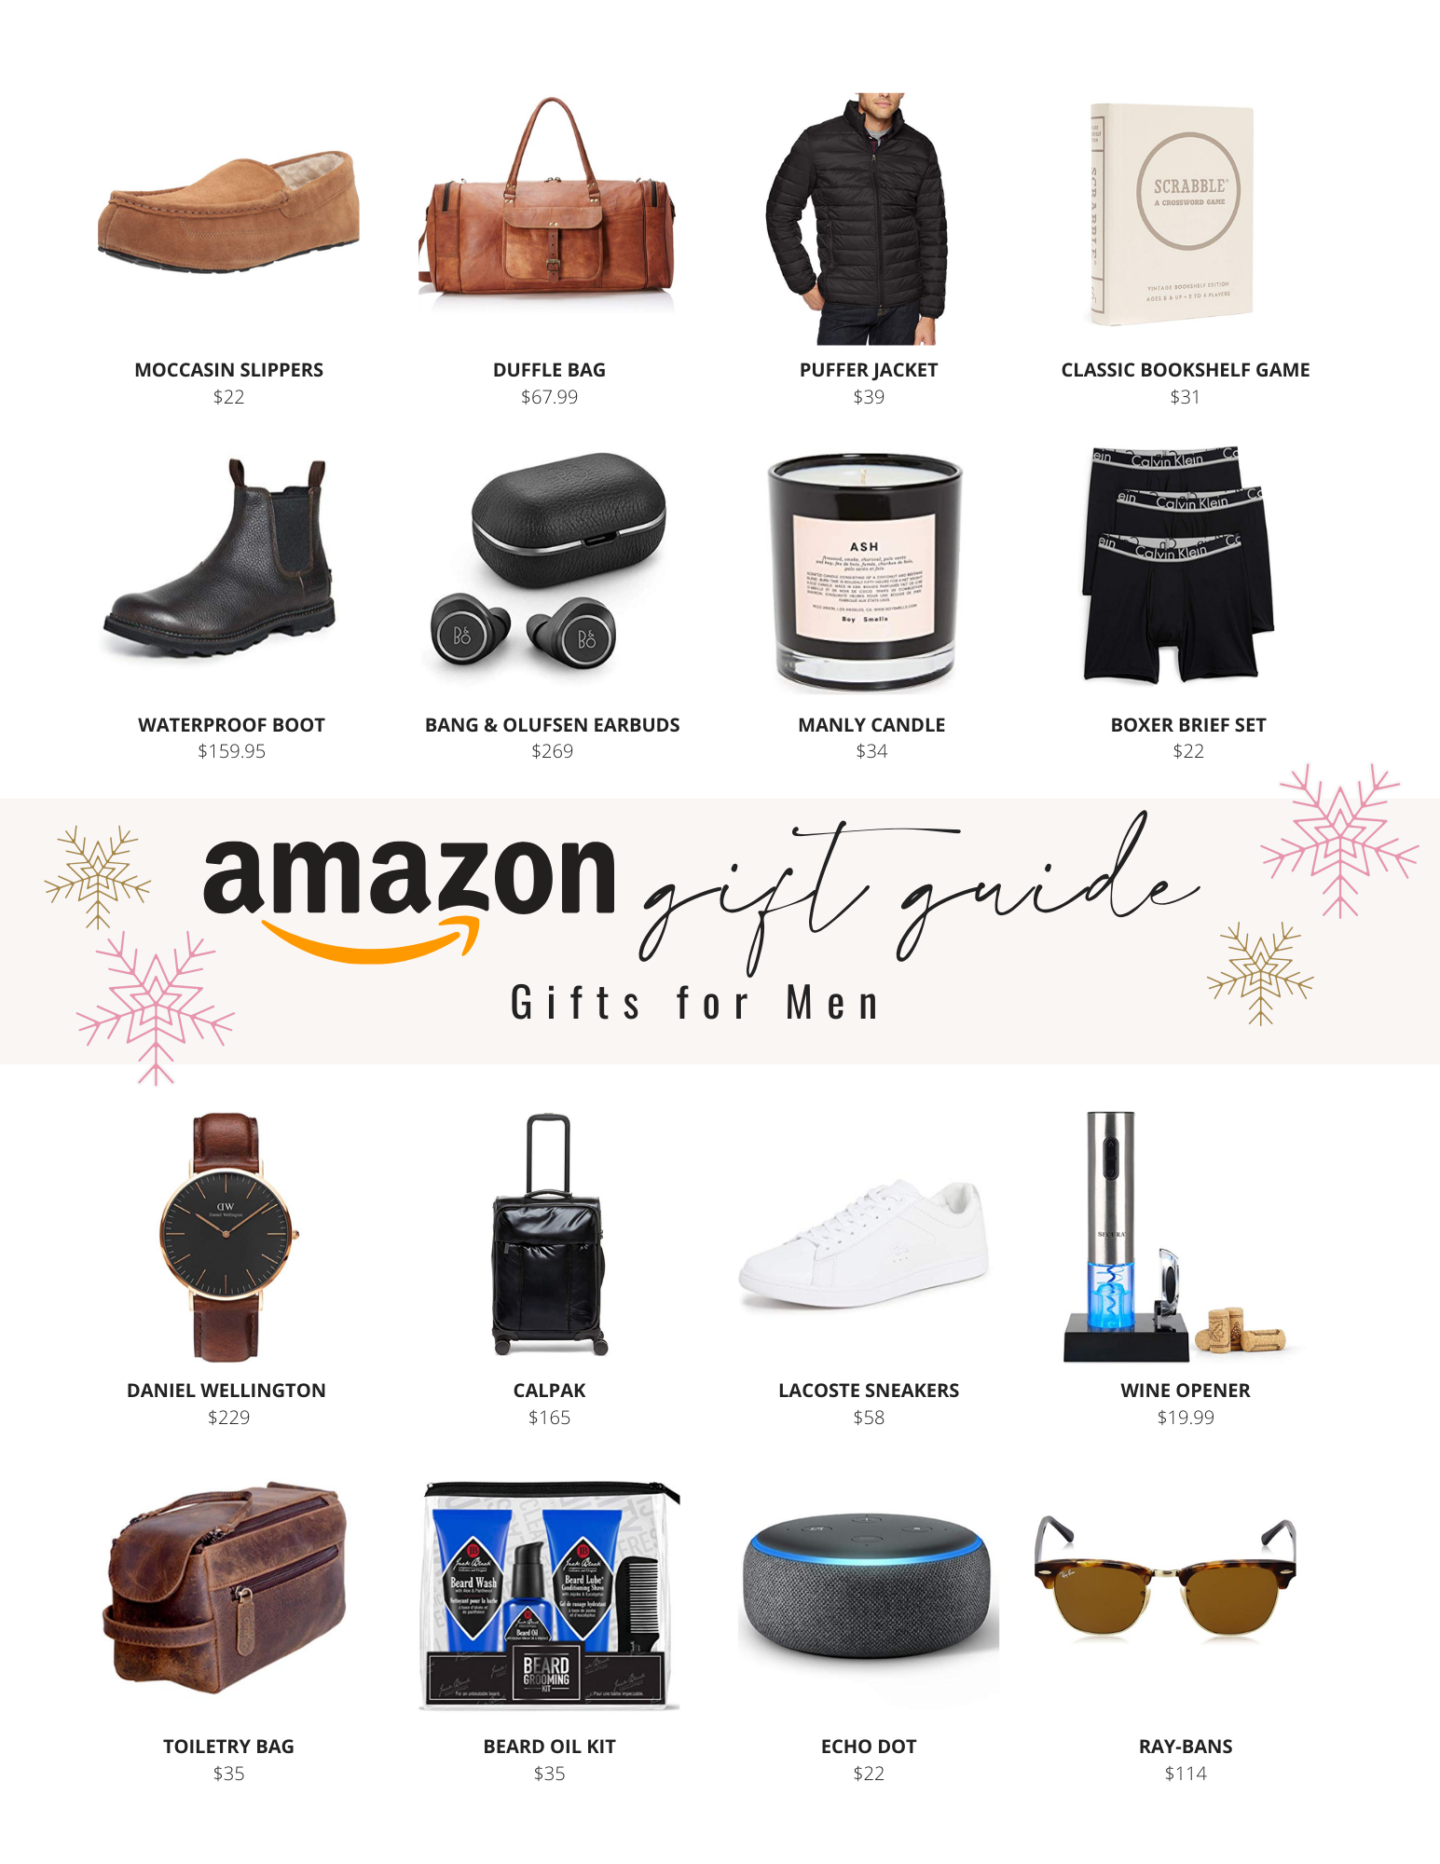 Amazon Gift Guide - Amazon Gifts for Men